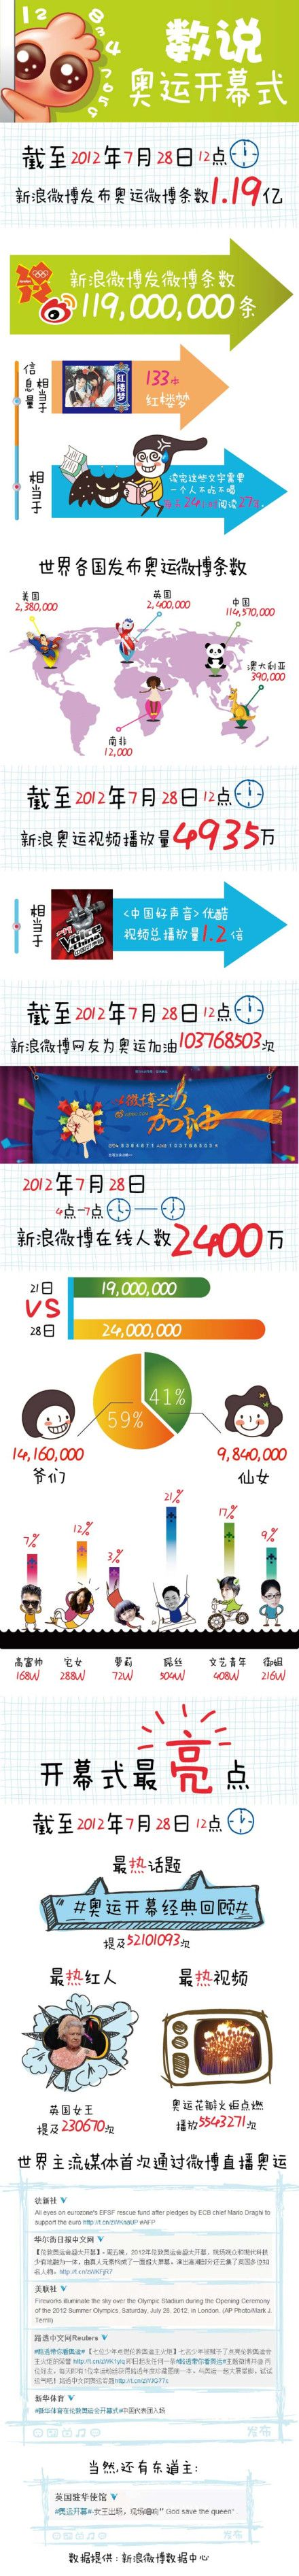 Sina Weibo Infographic on the